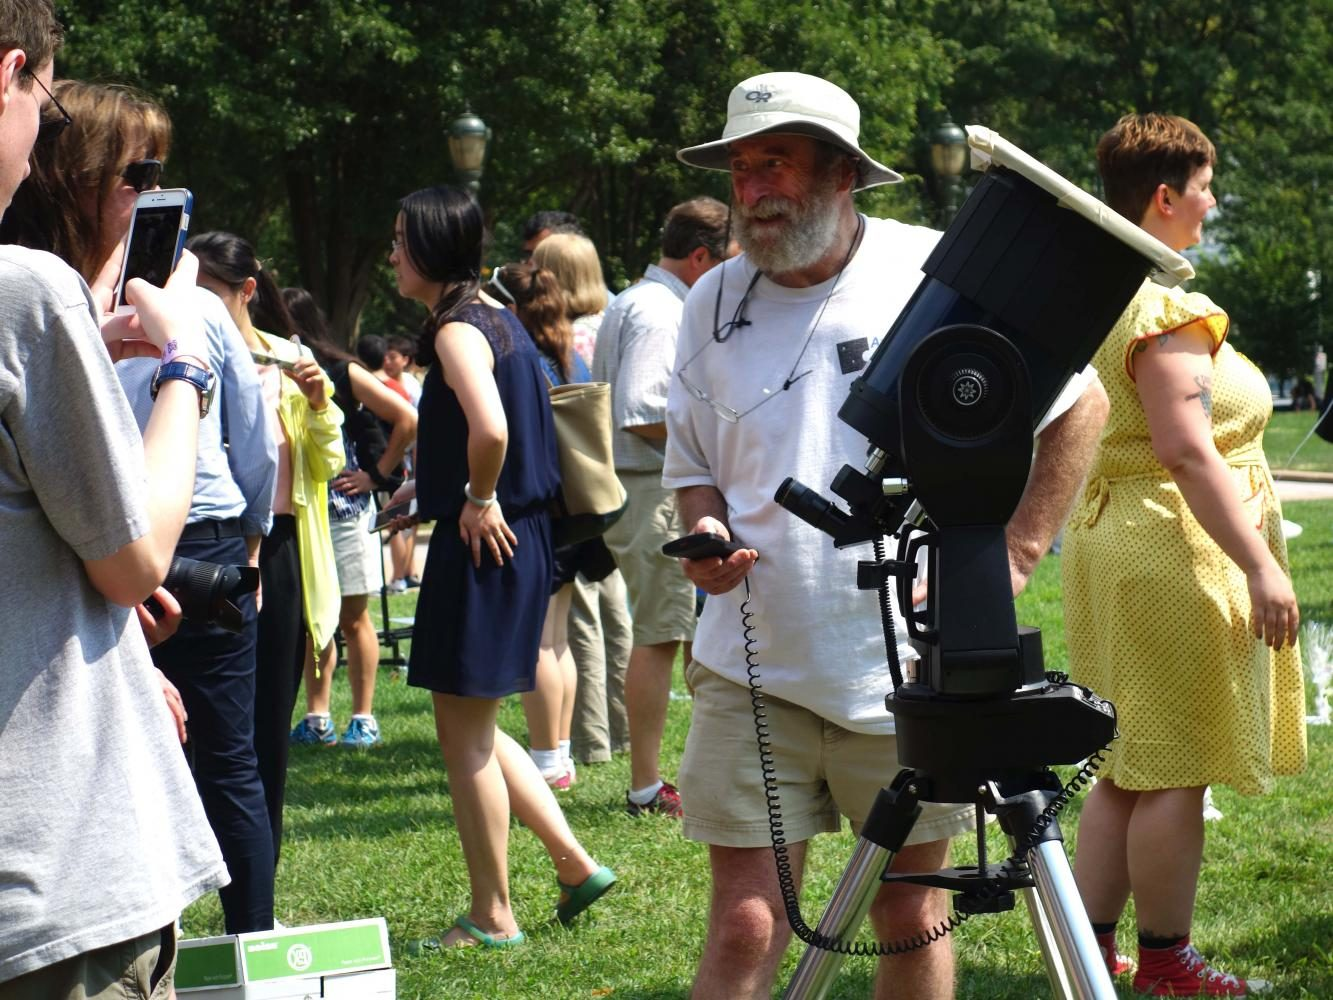 Many+viewed+the+eclipse+from+the+Warner+and+Swasey+Observatory+or+the+Kent+Hale+Smith+Oval.